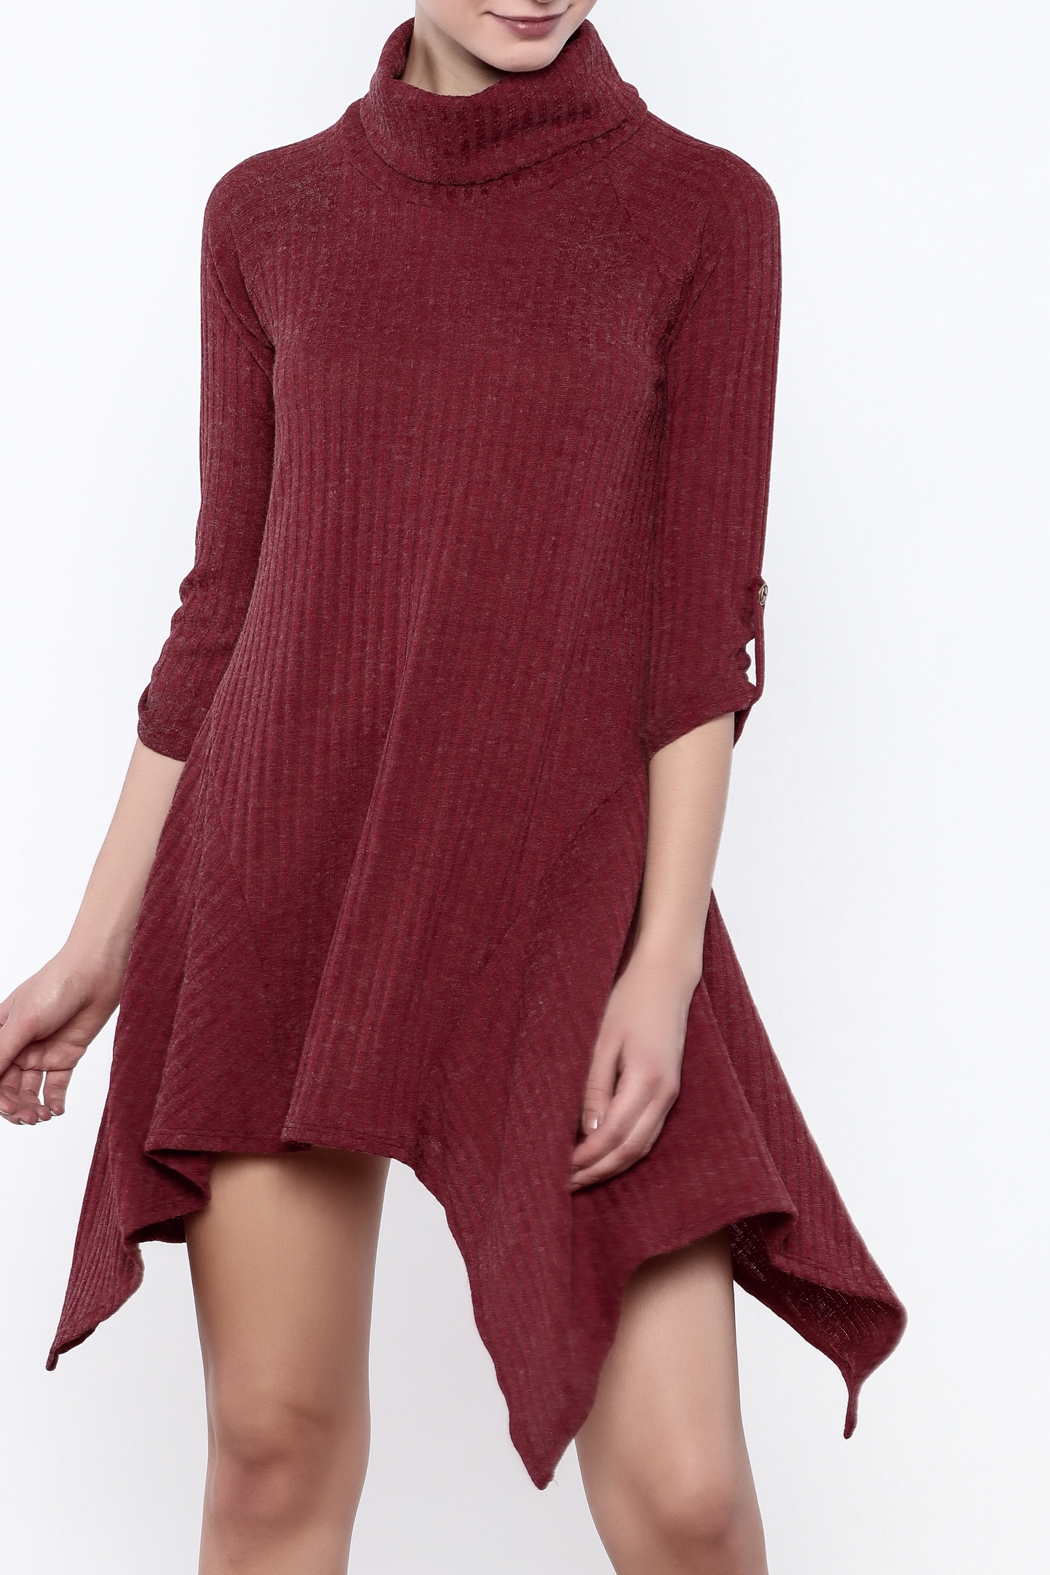 Tea N Rose Knit Sweater Dress From Tennessee By White Lily